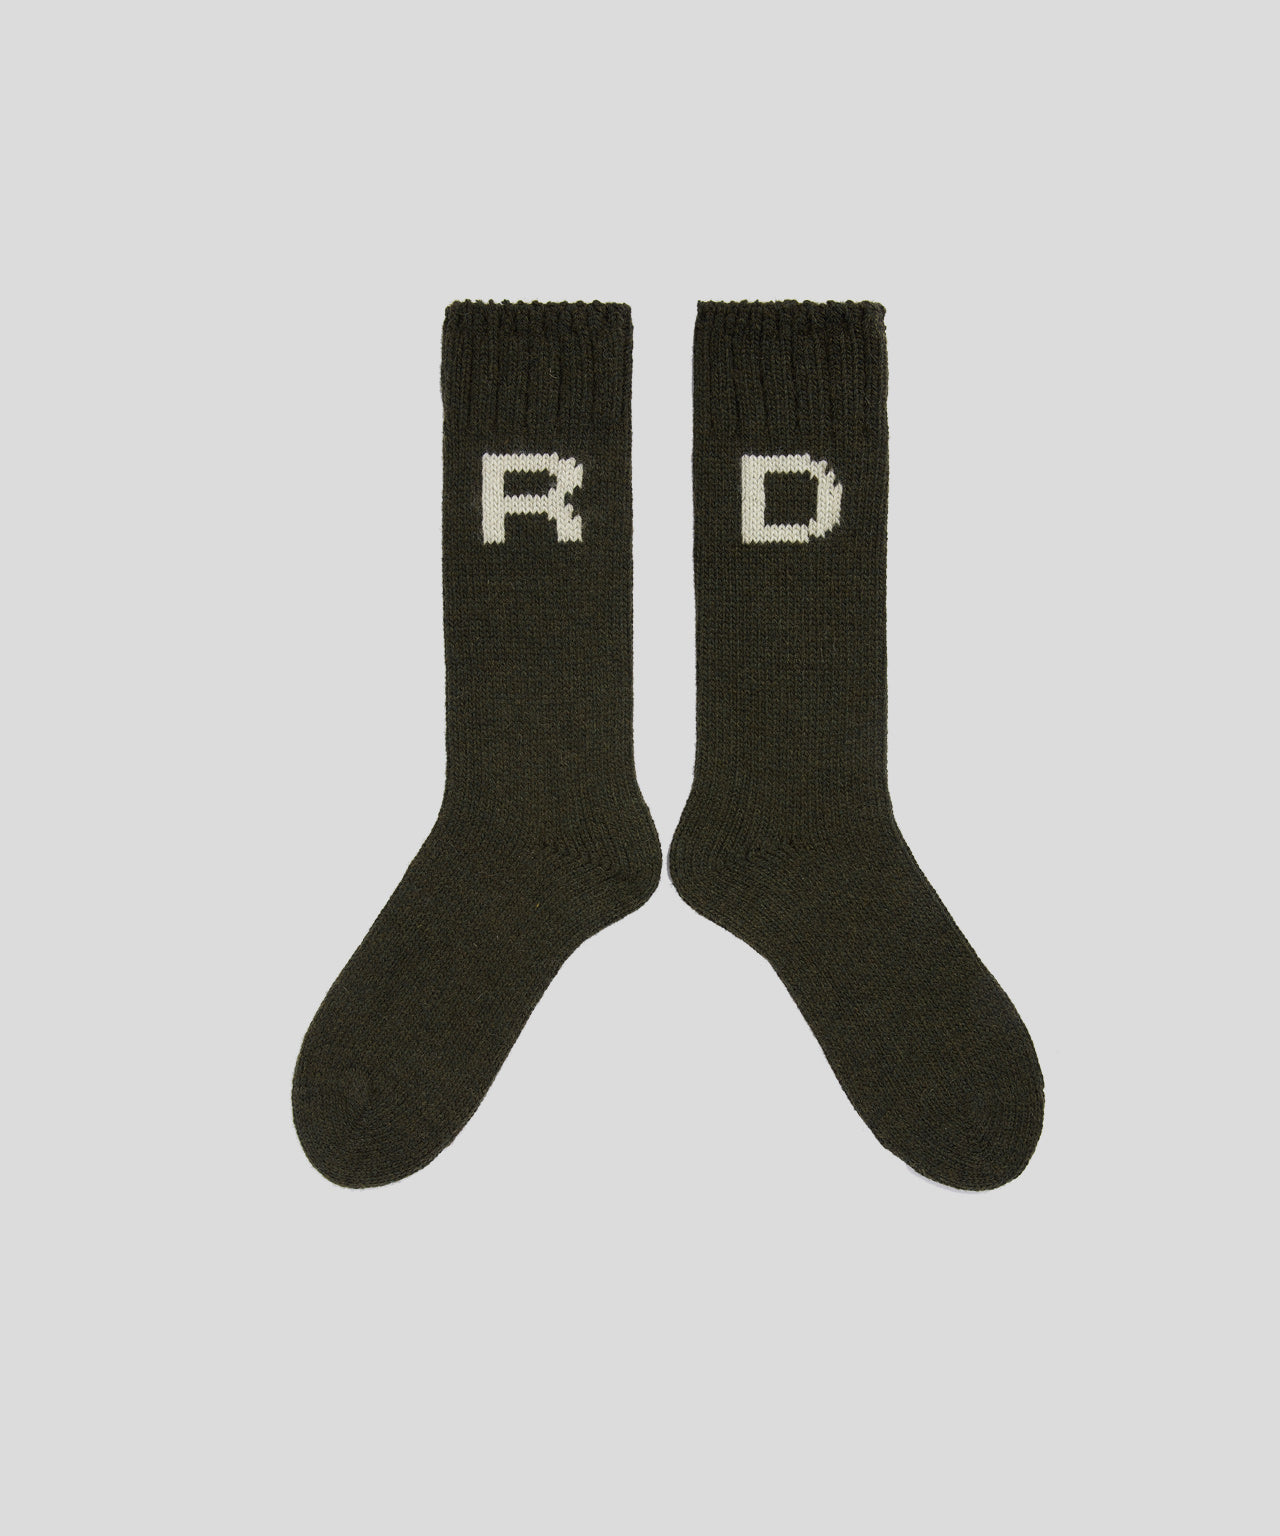 Wool Socks RD - khaki